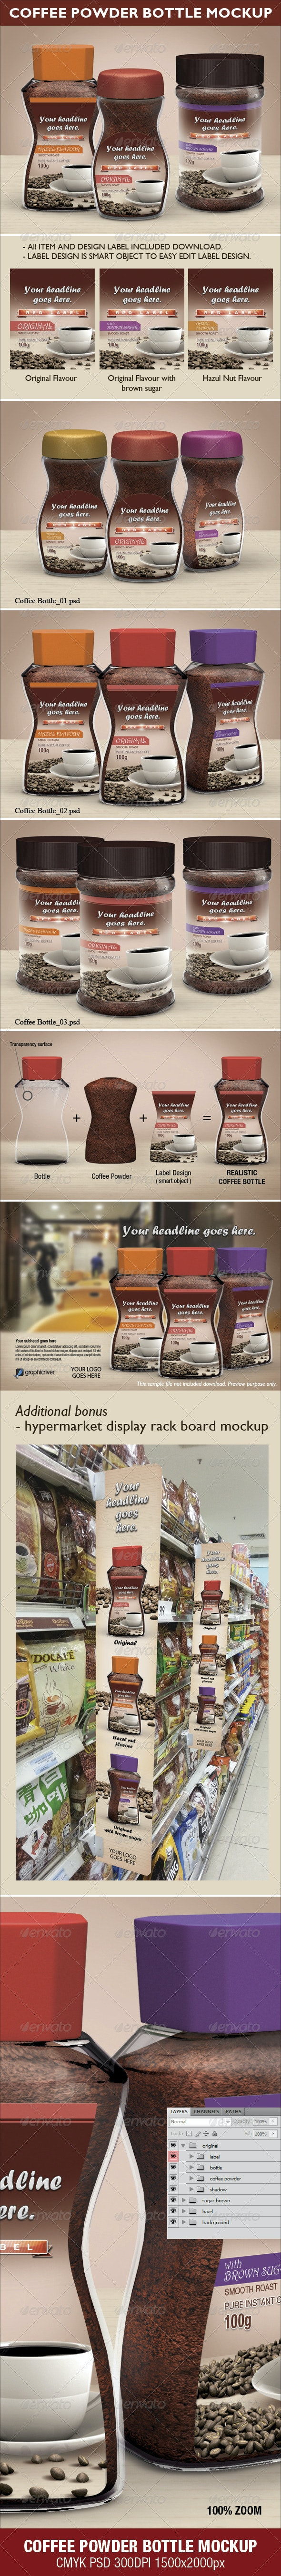 Coffee Powder Bottle Mock-up - Food and Drink Packaging